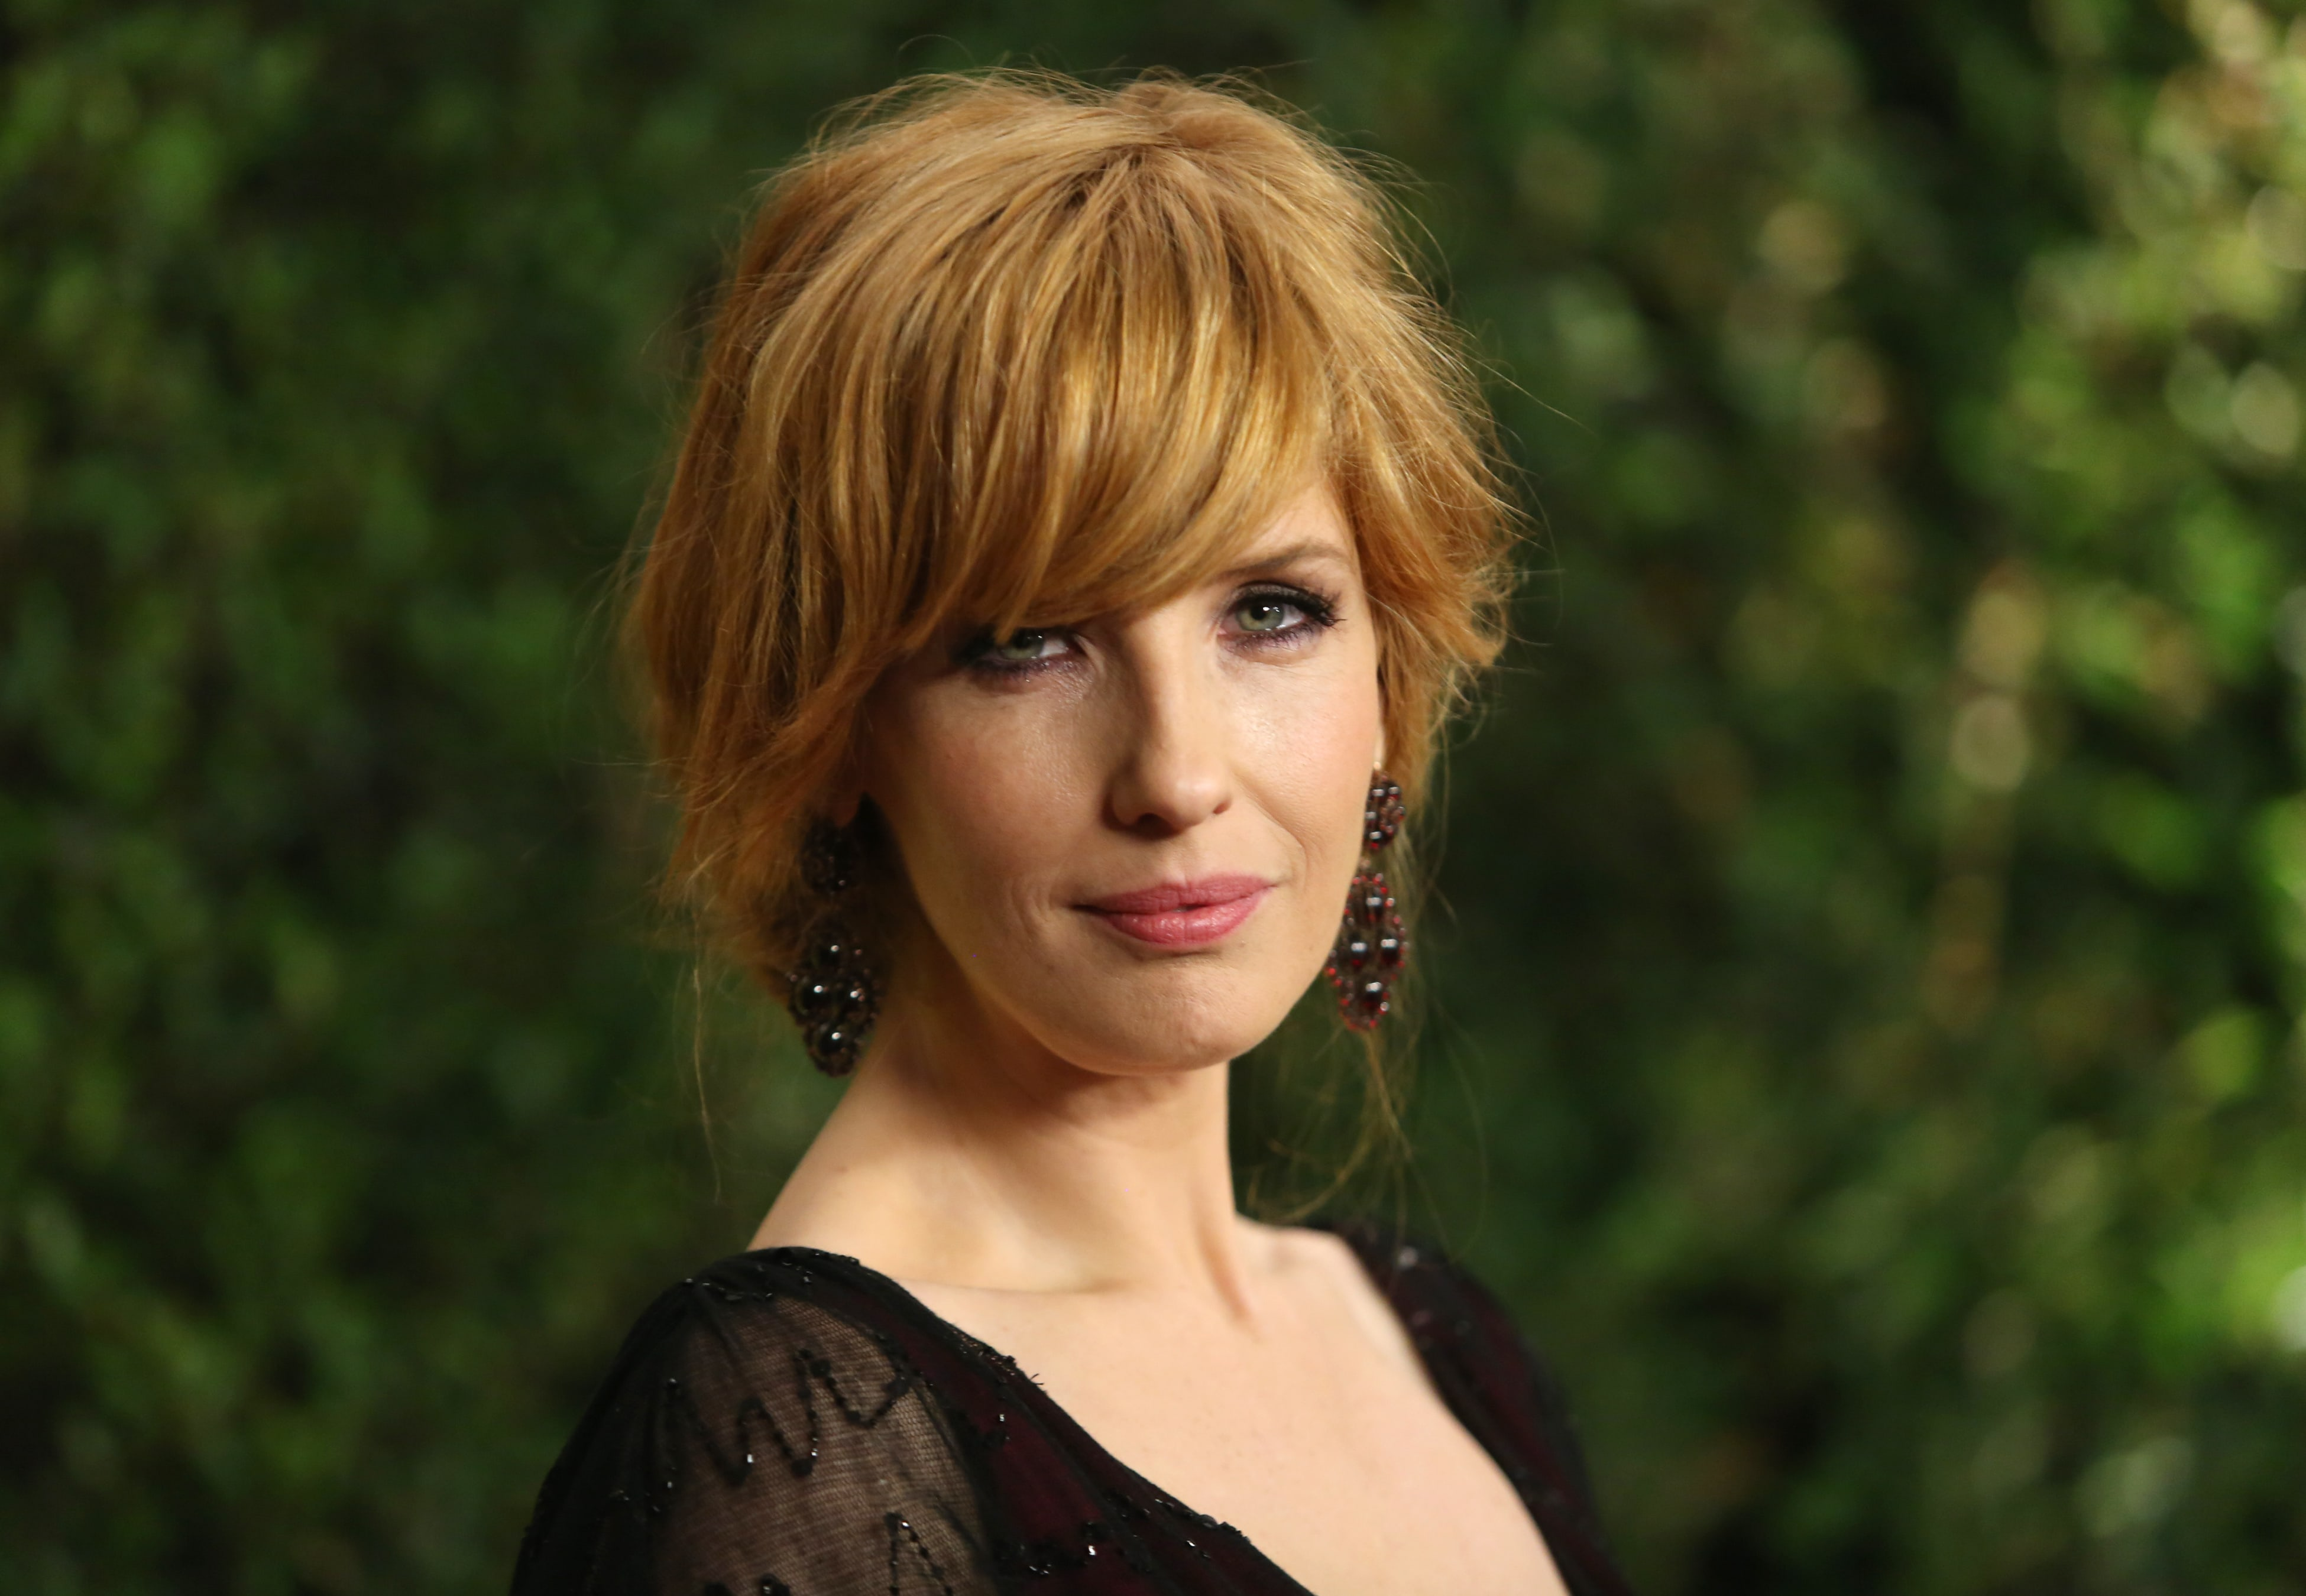 3900x2700 - Kelly Reilly Wallpapers 1